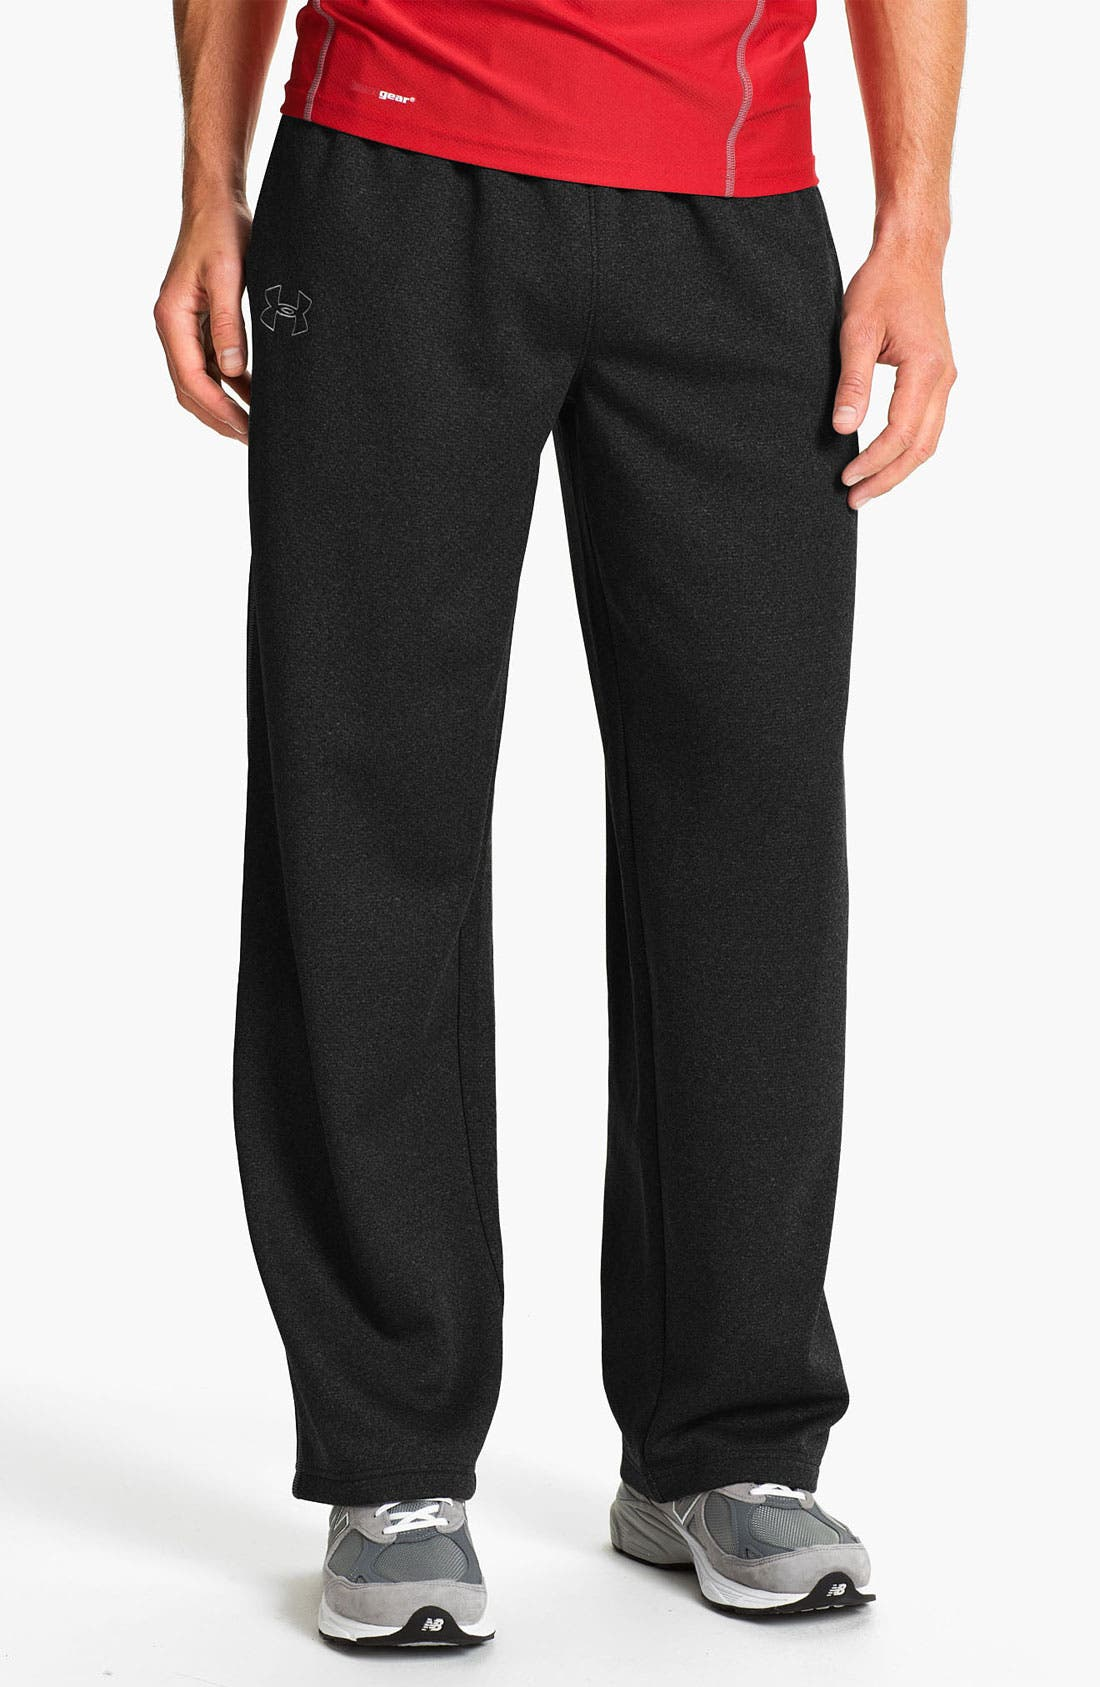 Main Image - Under Armour Tech Fleece Track Pants